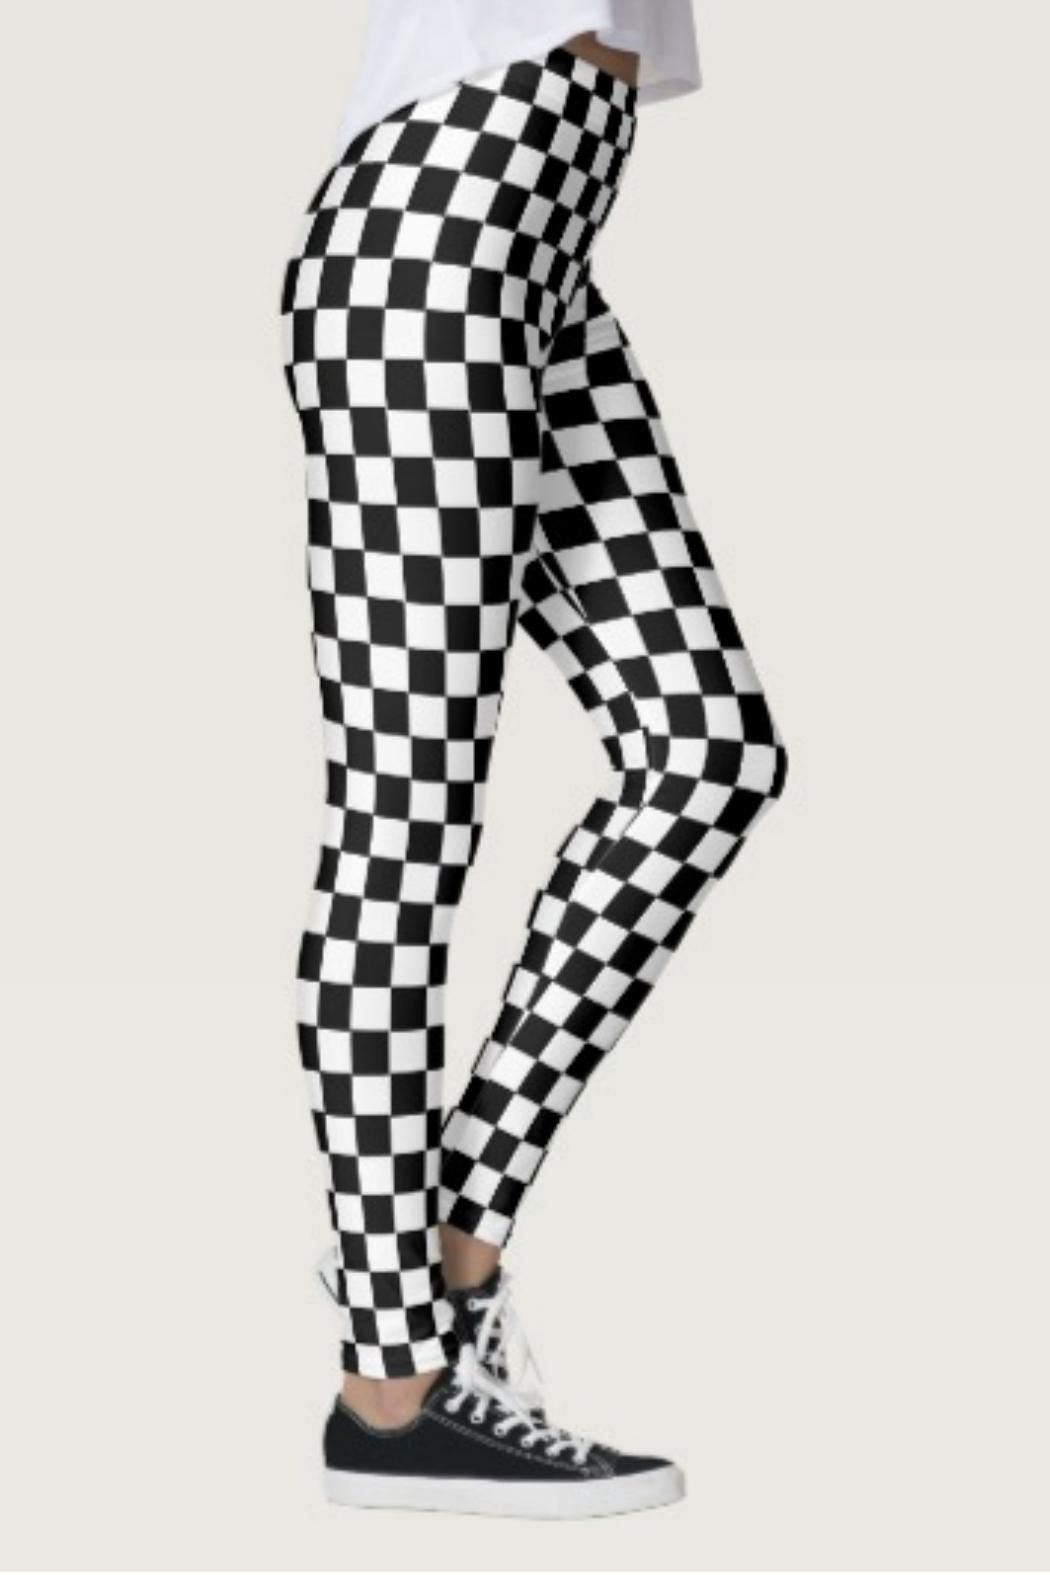 53ff714df32fe Shosho Black-White Checkered Leggings from North Carolina by Lucky Lucy's  Boutique — Shoptiques